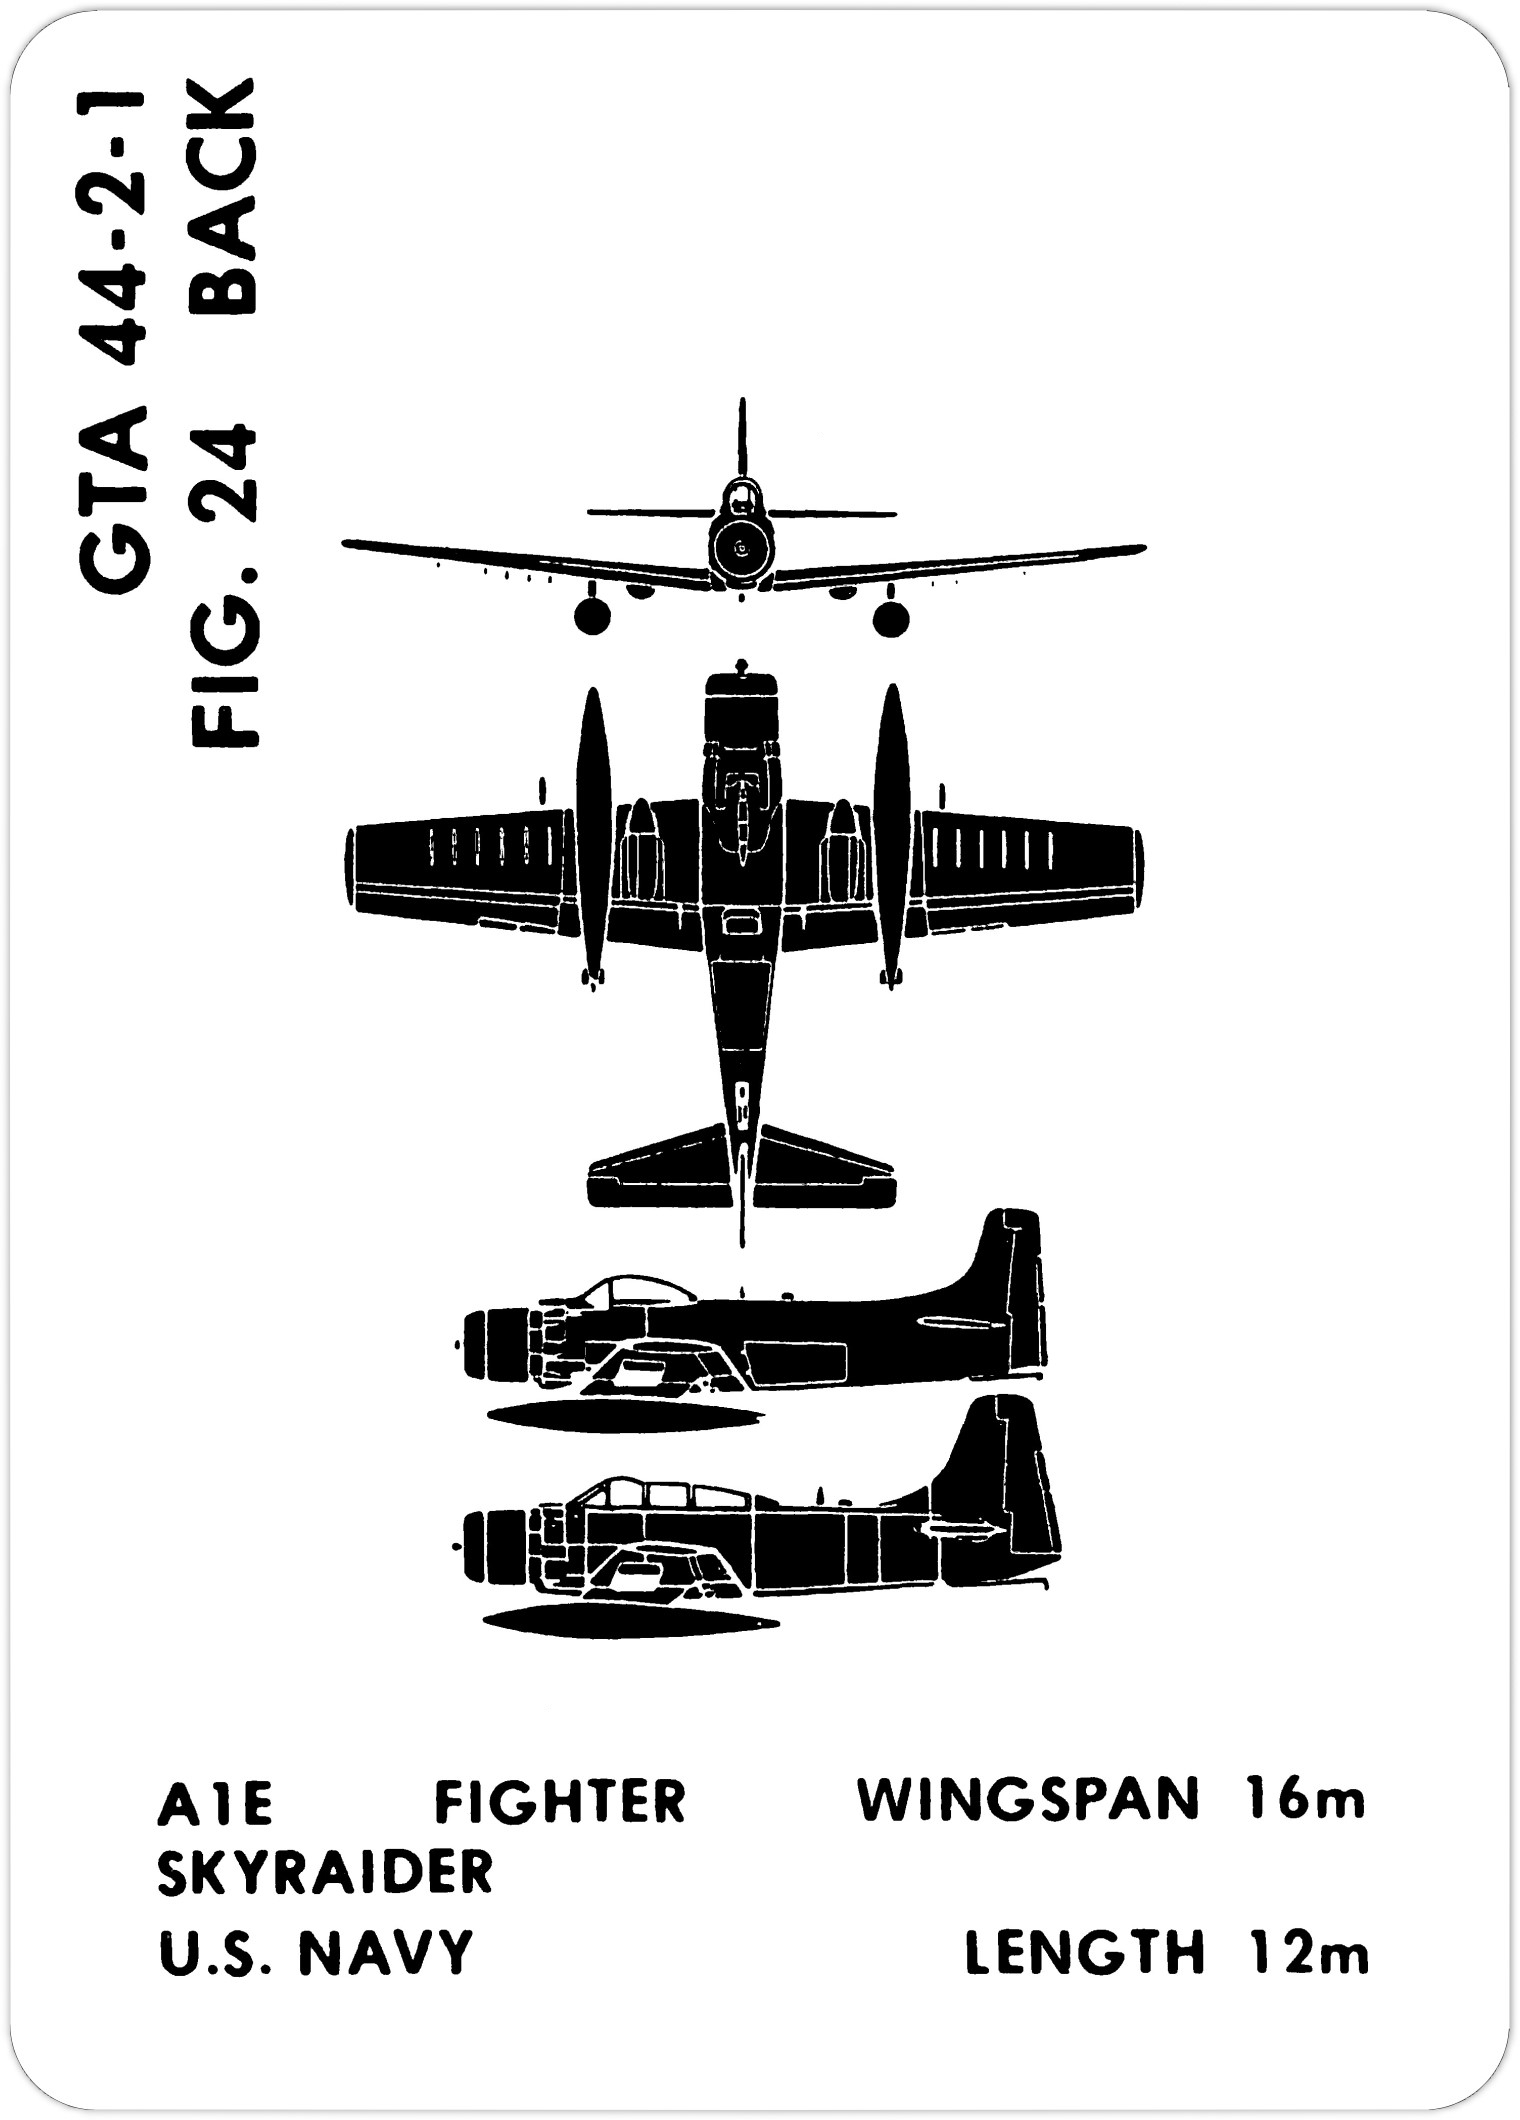 1977 Visual Aircraft Recognition, HQ Department of the